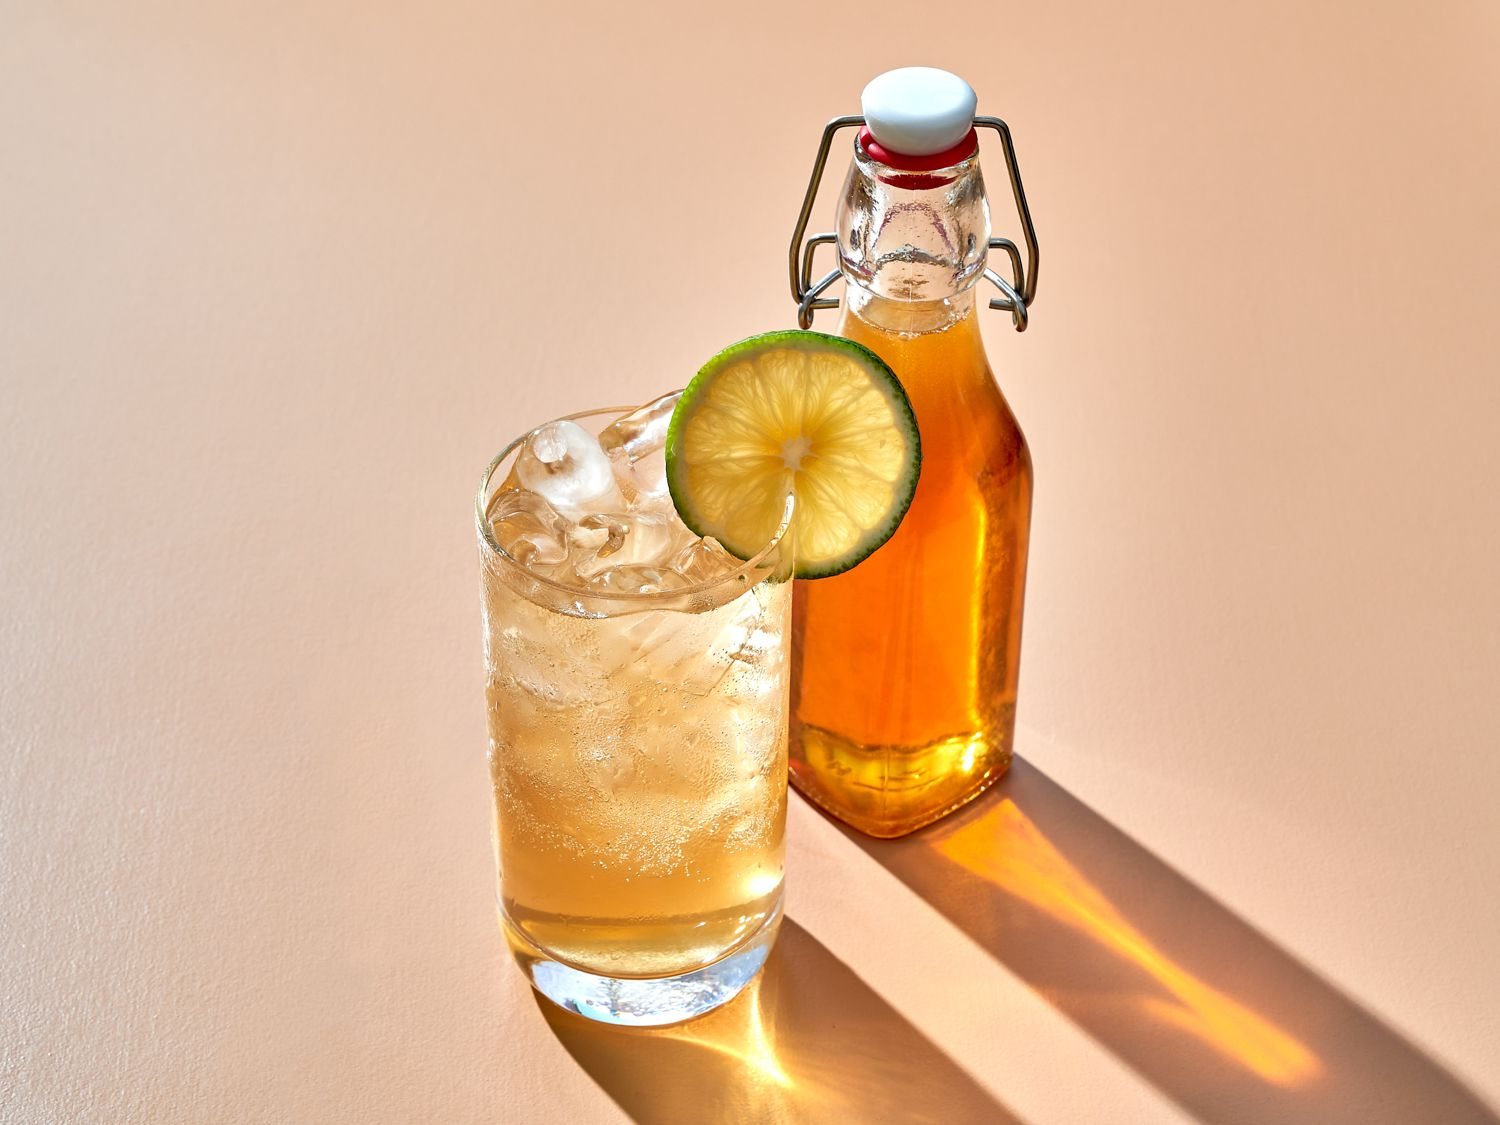 tonic syrup combined with sparkling water in a glass with ice, bottle of tonic syrup in the backround